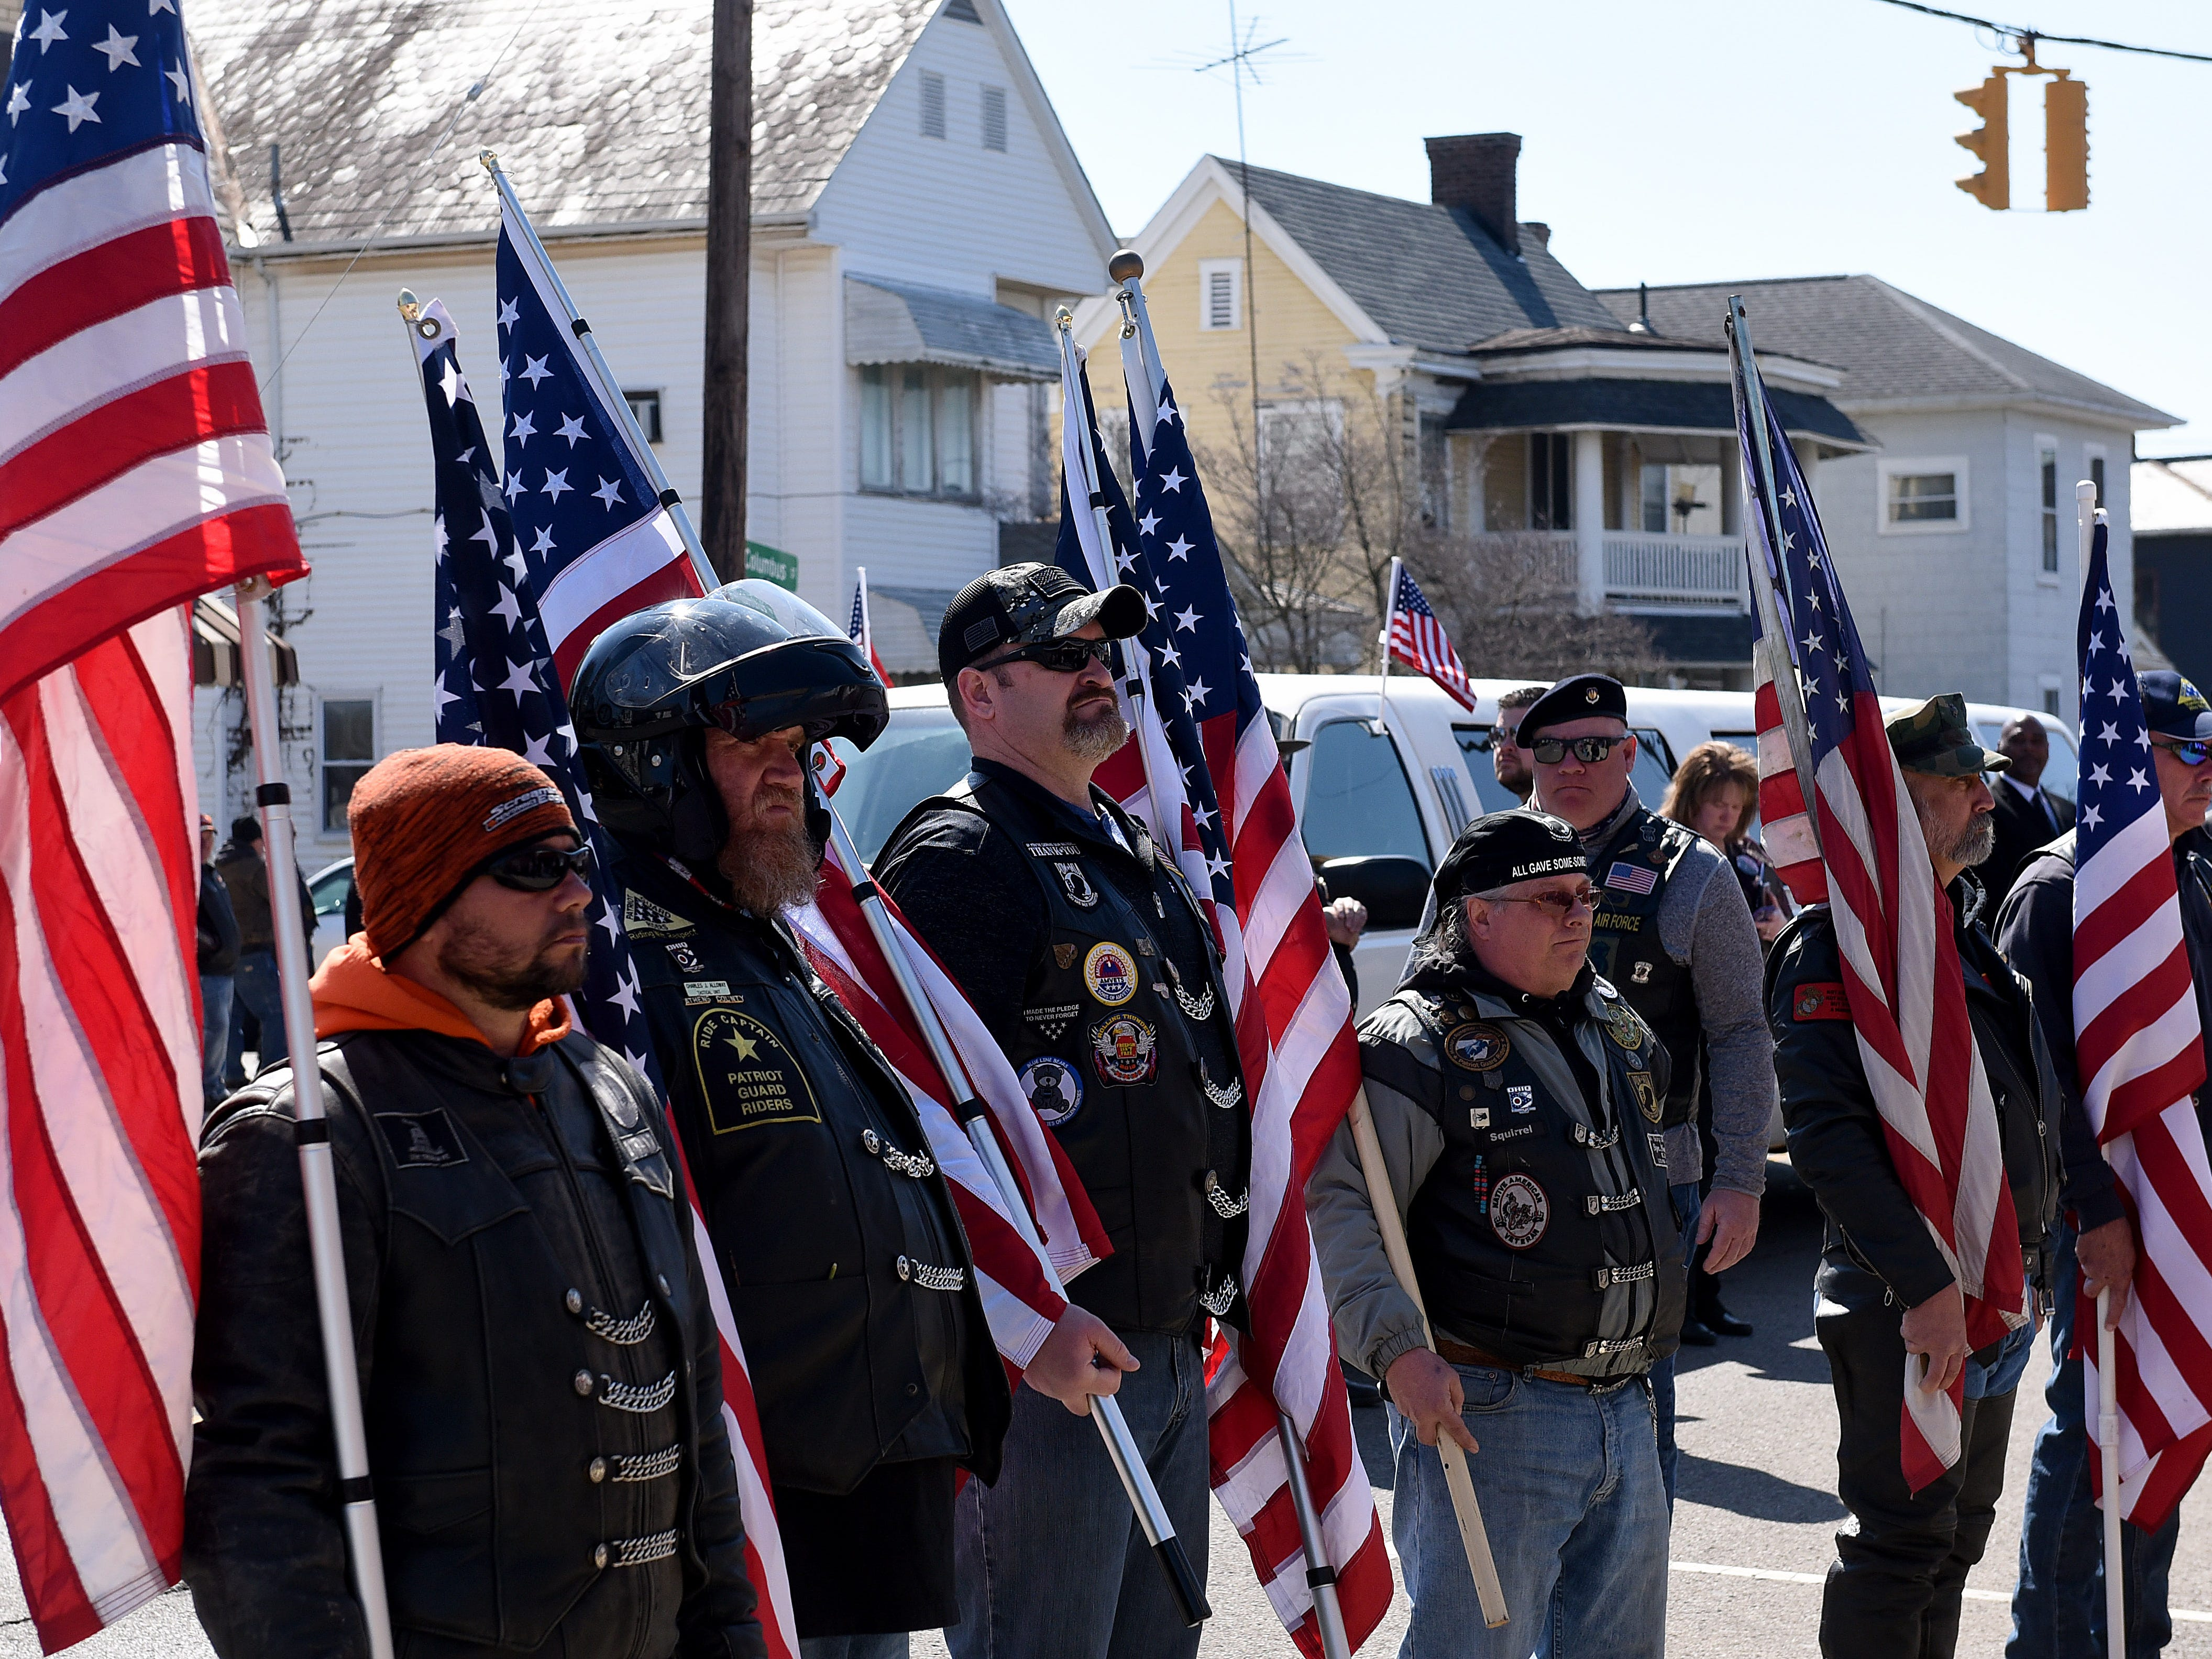 Patriot Guard Riders stand outside Frank E. Smith Funeral Home after a procession from Rickenbacker International Airport in Columbus. Over 300 cyclist joined the procession.